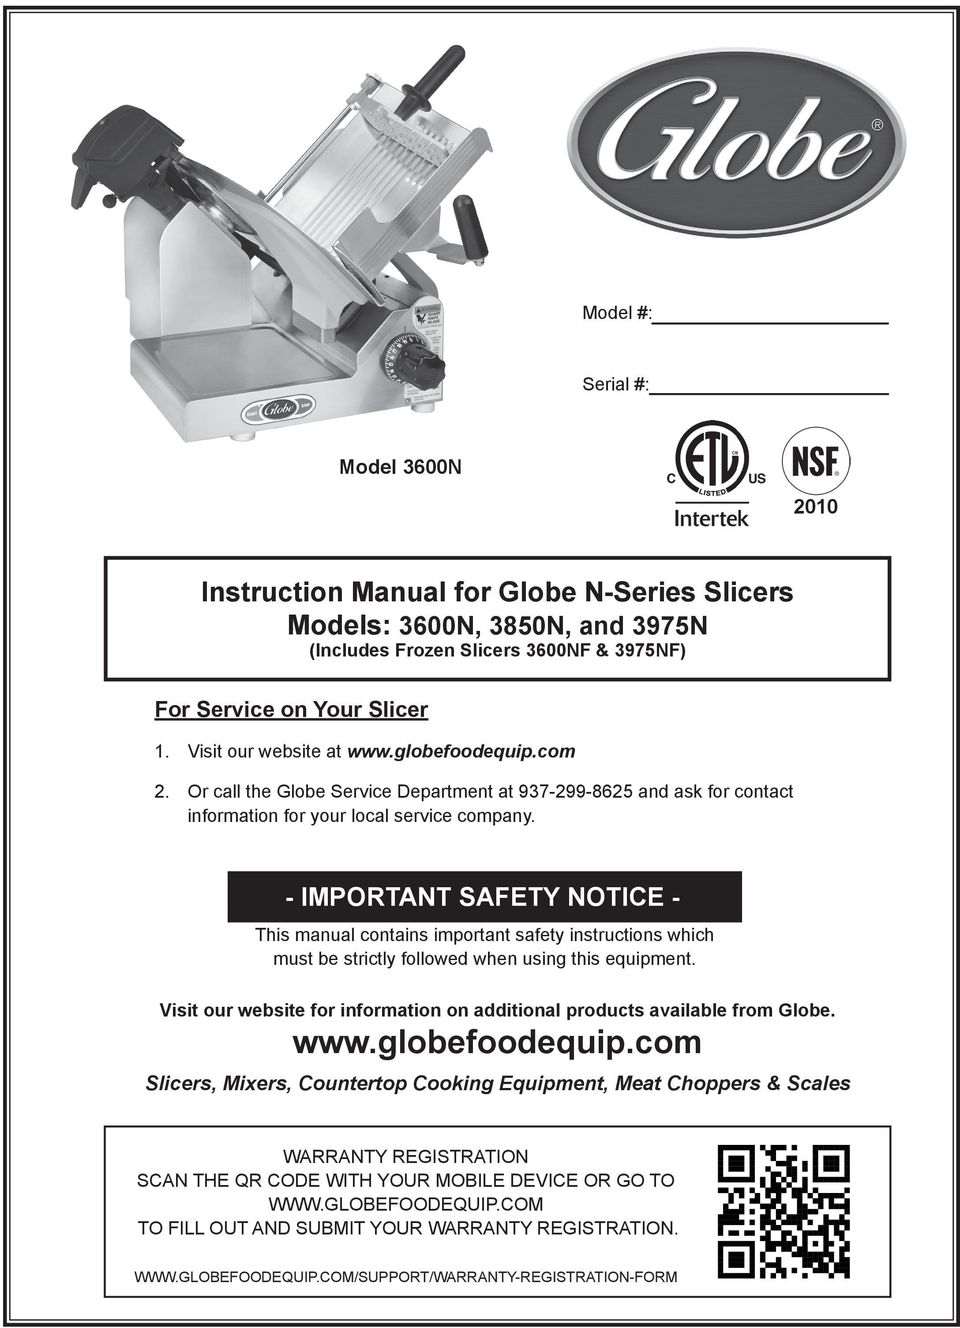 - IMPORTANT SAFETY NOTICE - This manual contains important safety instructions which must be strictly followed when using this equipment.